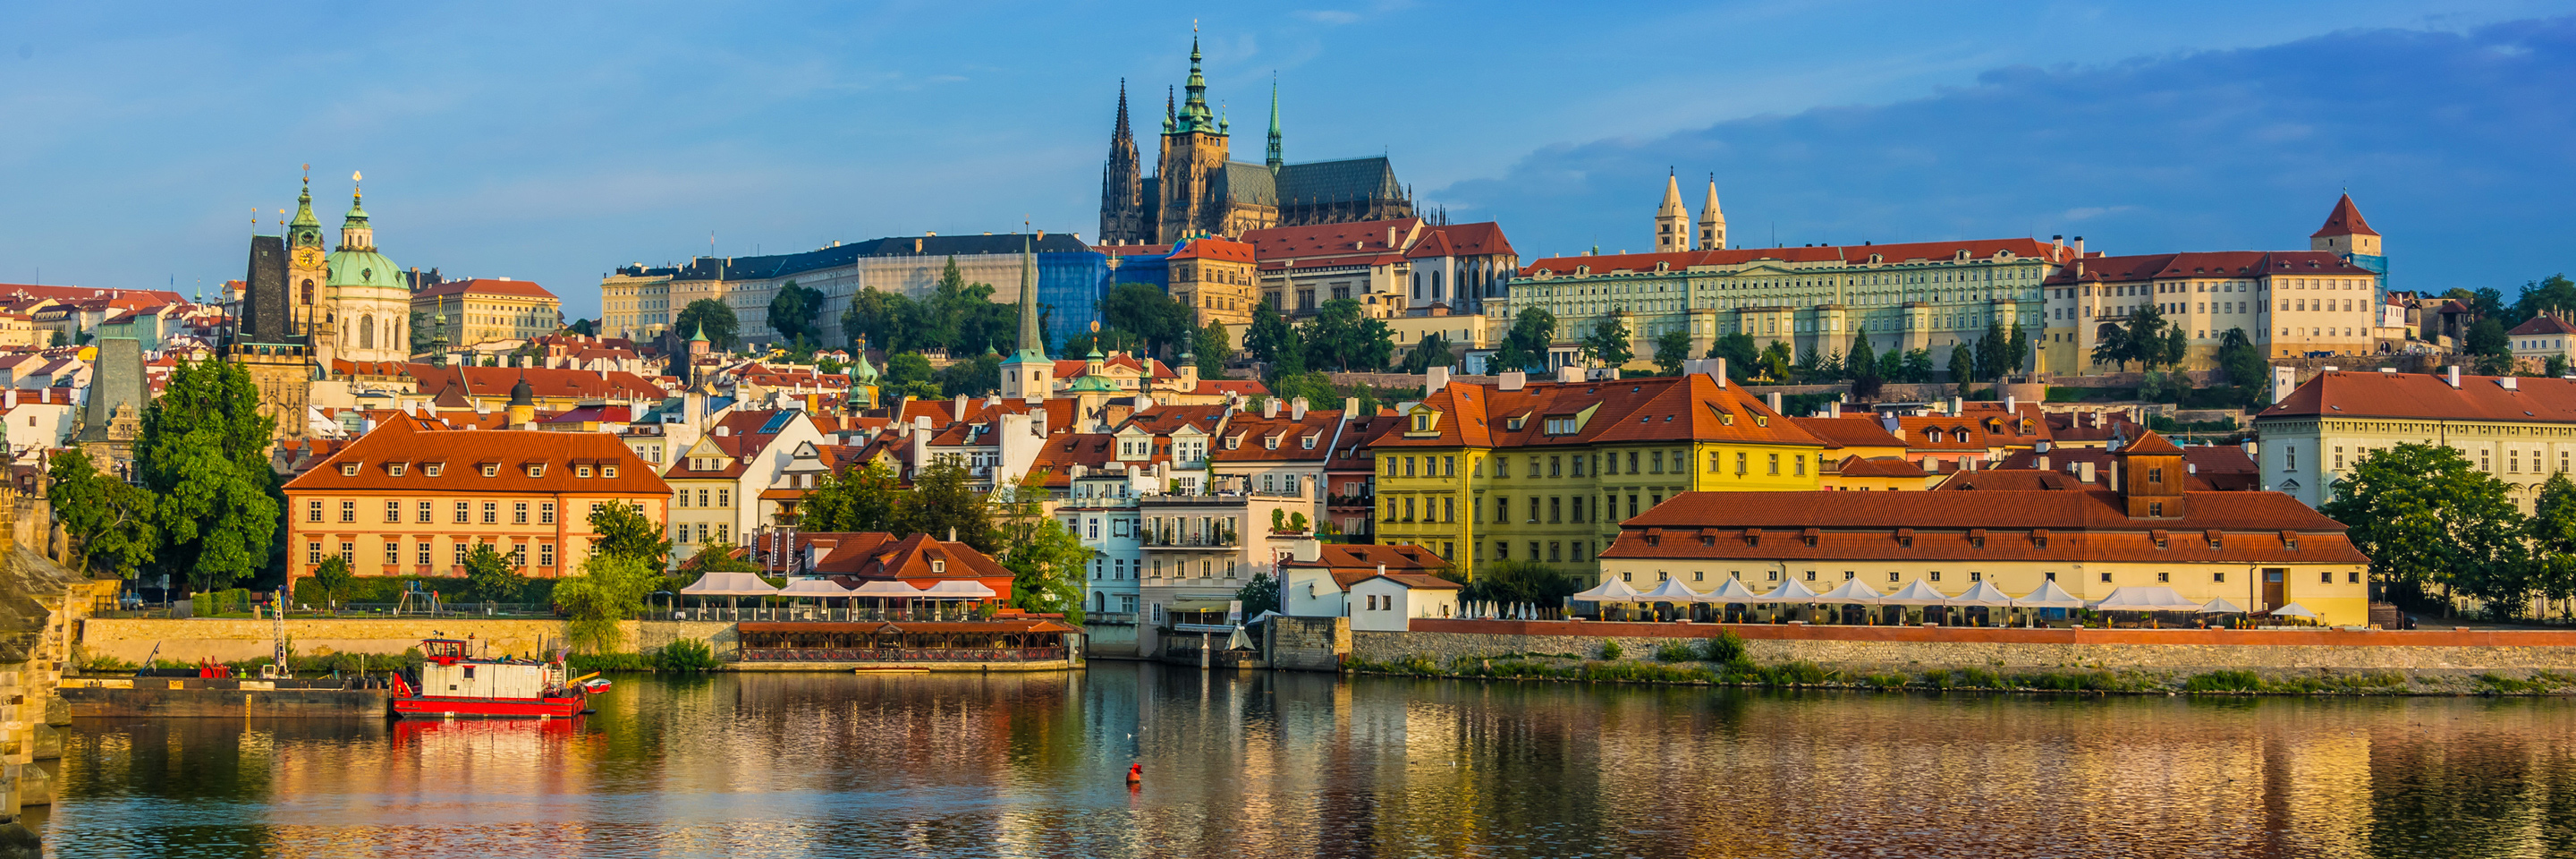 Once upon Three Rivers: the Rhine, Moselle & Main with 2 nights in  Prague, 2 nights in Paris and 2 nights in London for Photography Enthusiasts